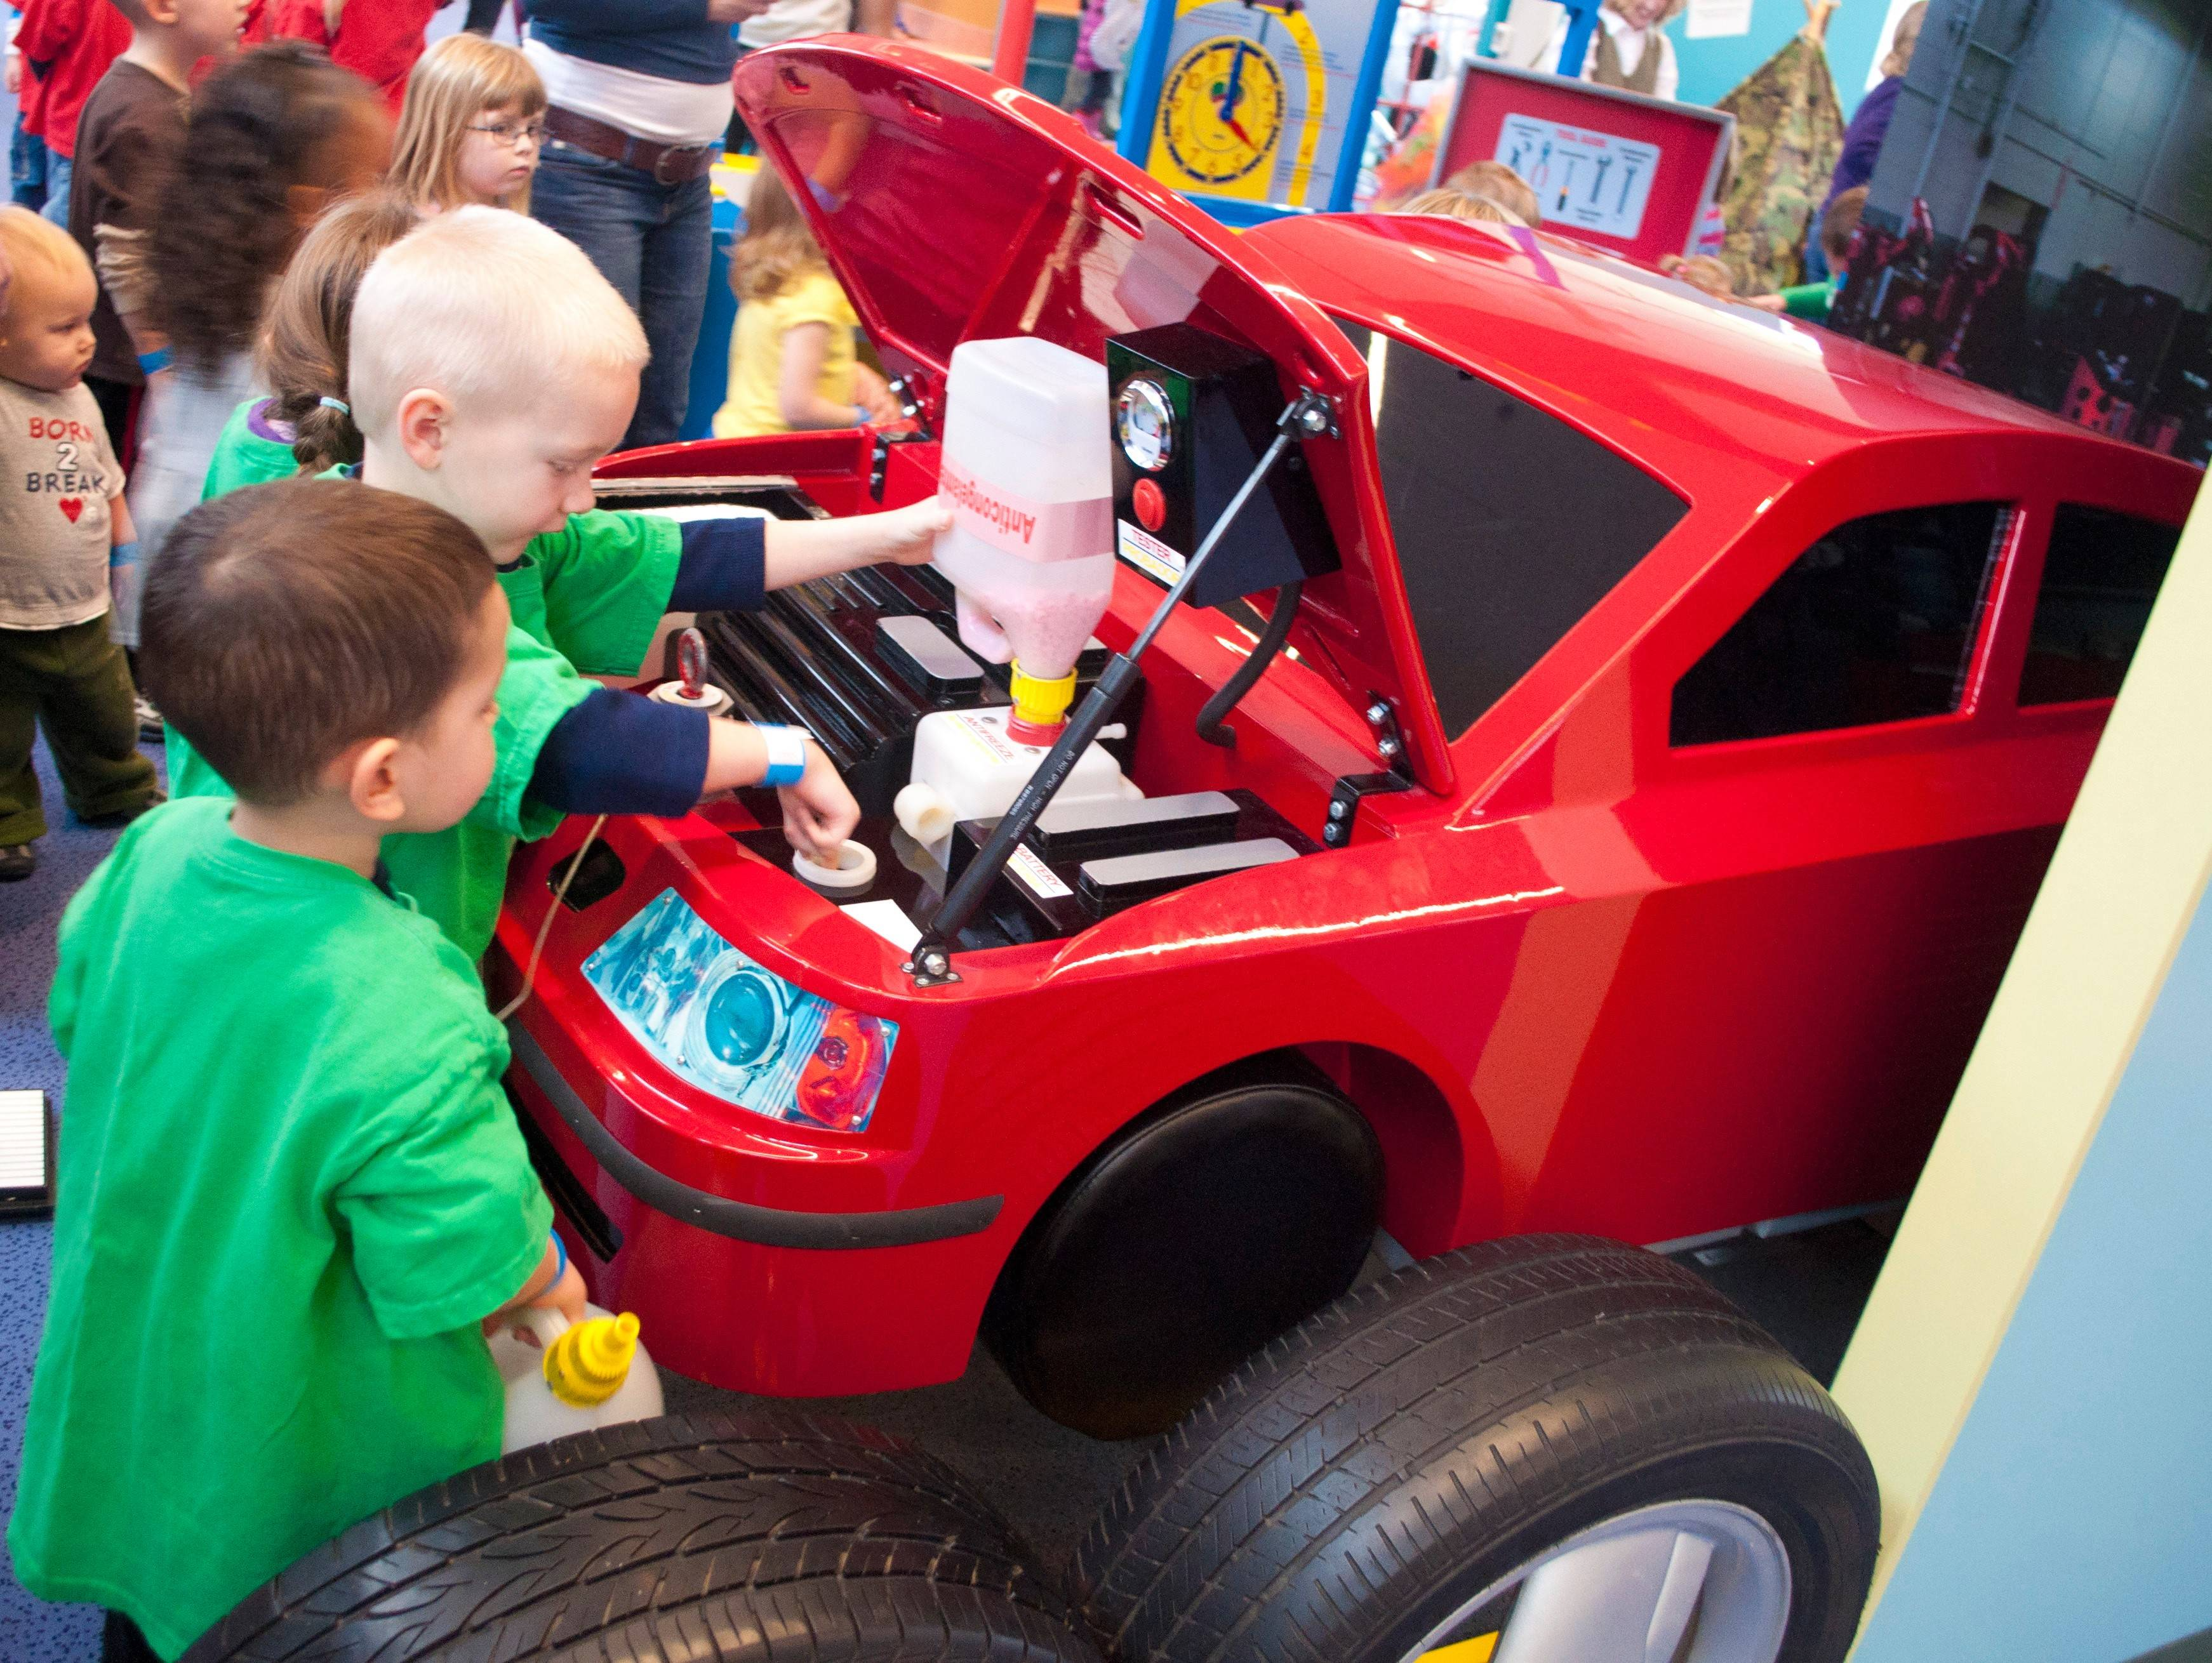 Children at the Kansas Children's Discovery Center work together to repair the car in the careers gallery.